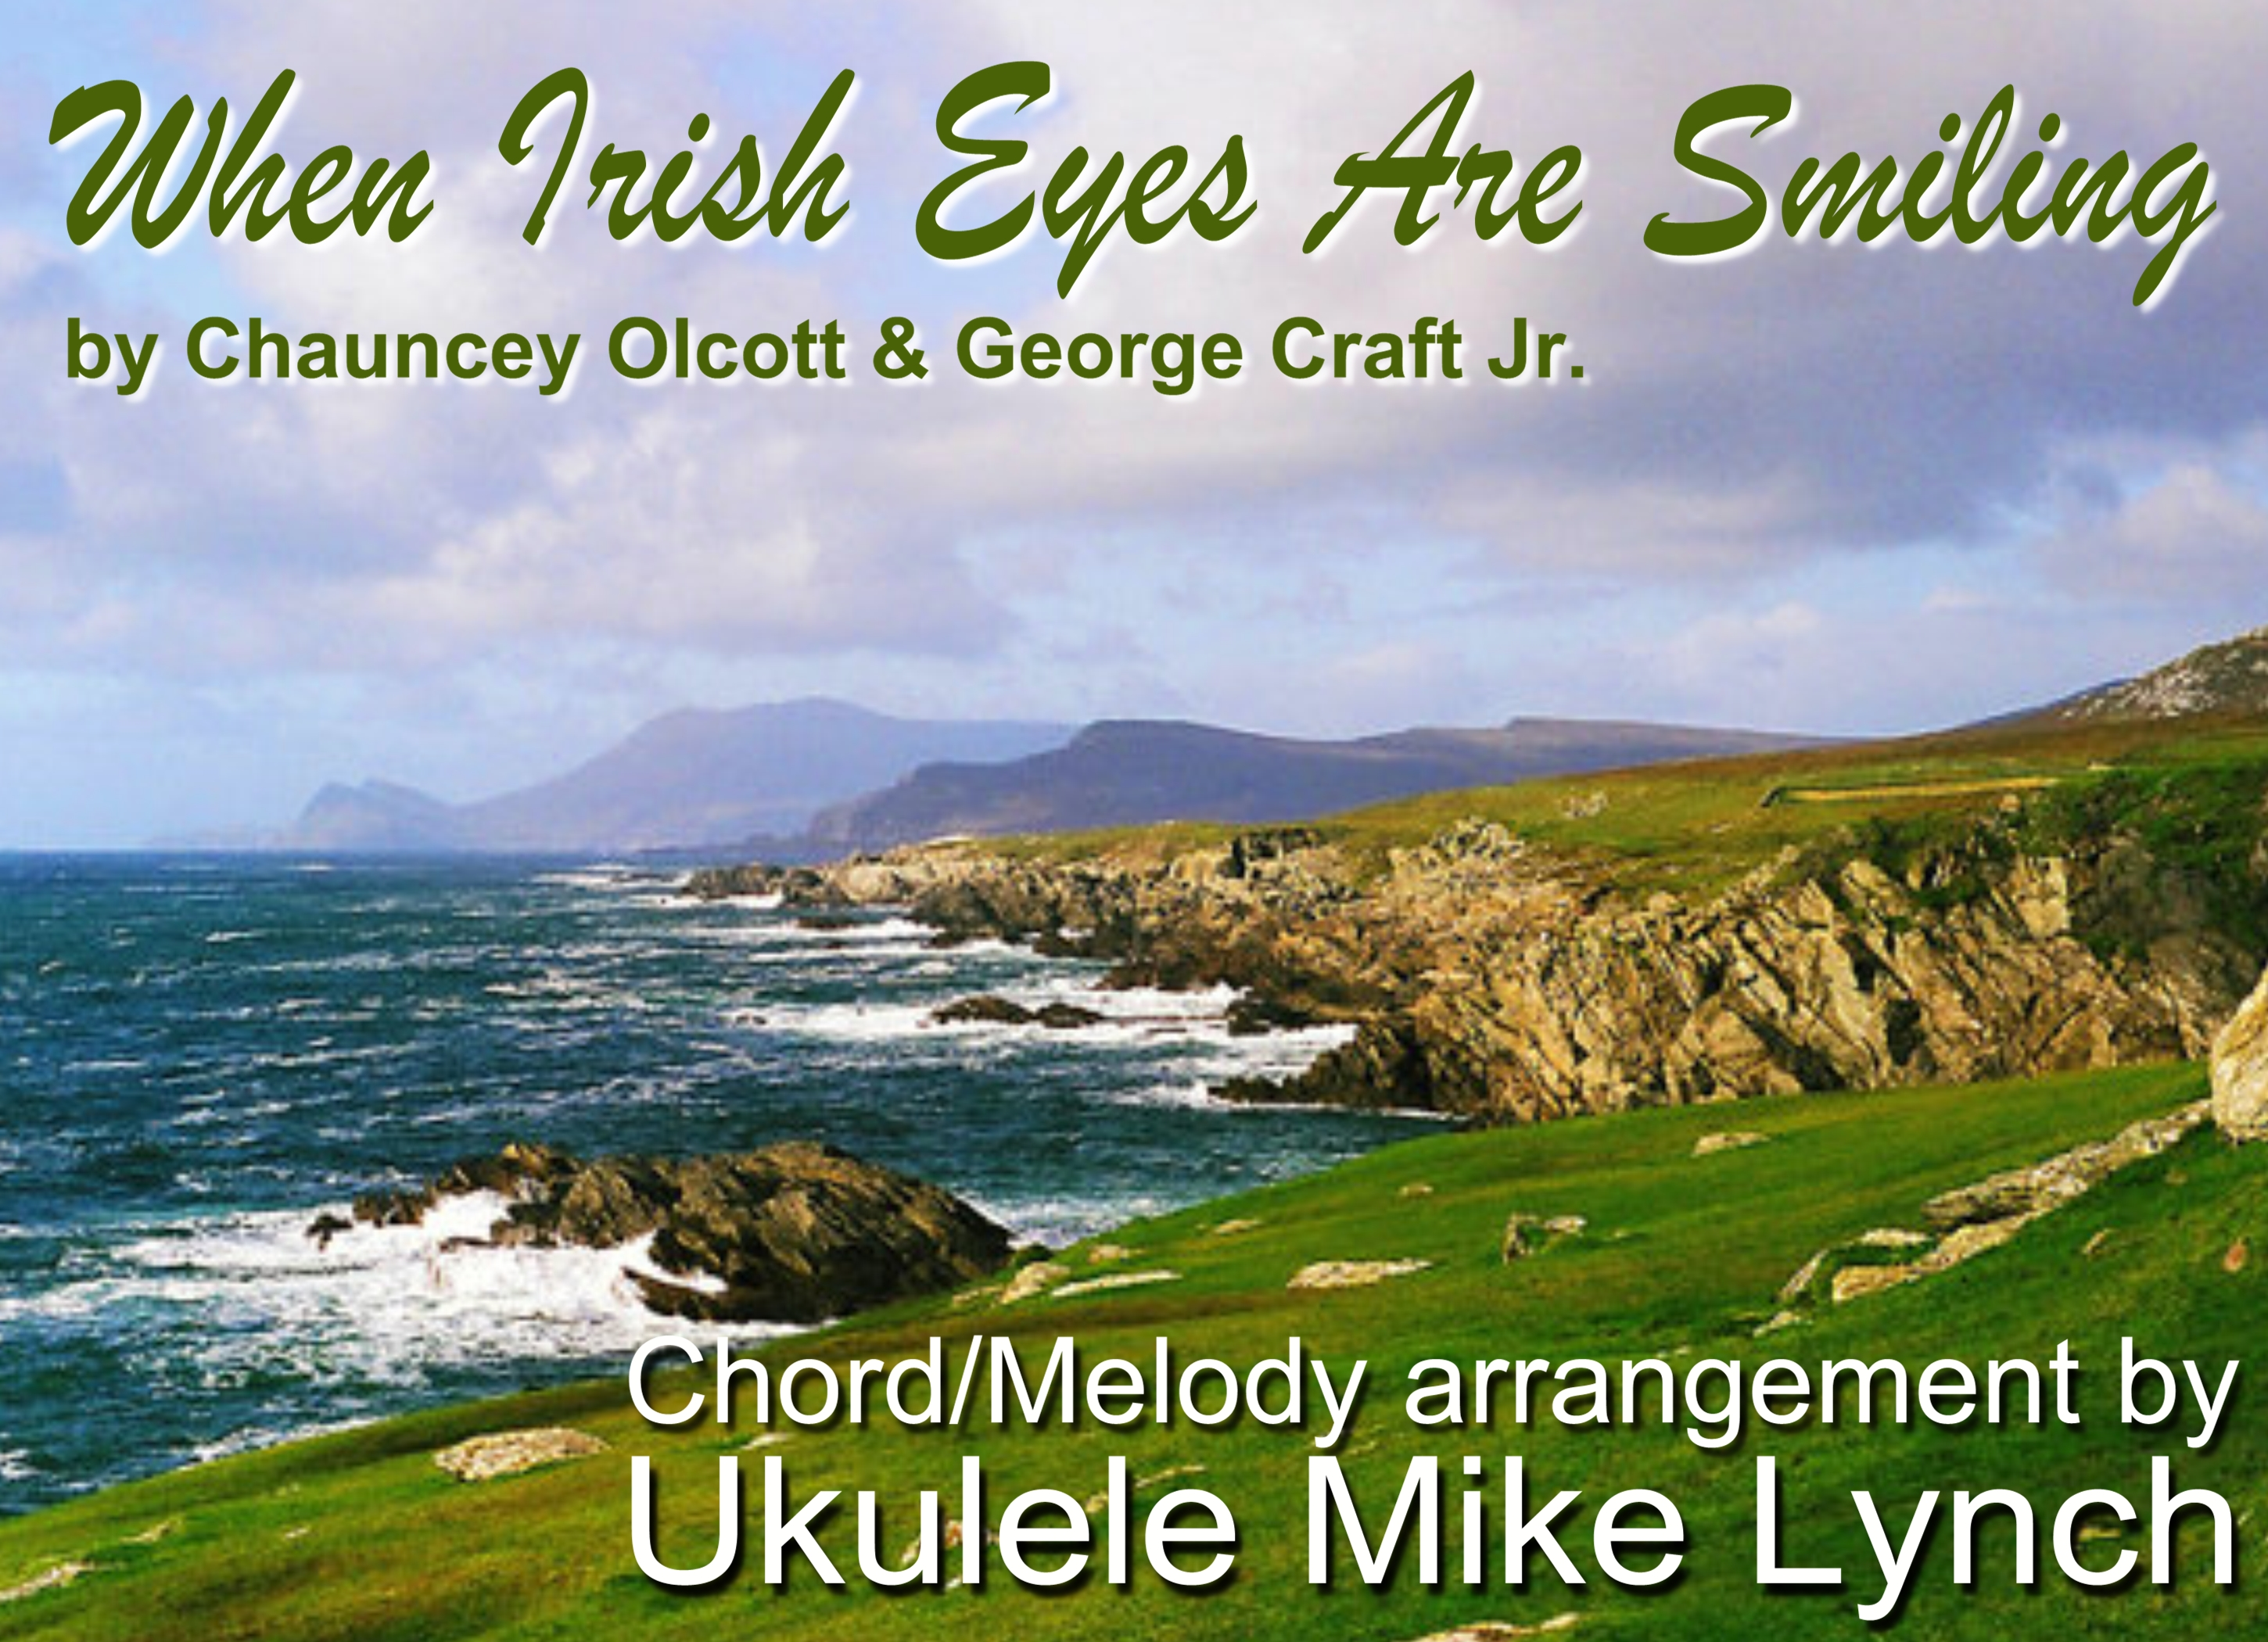 When Irish Eyes Are Smiling By Chauncey Olcott And George Graff